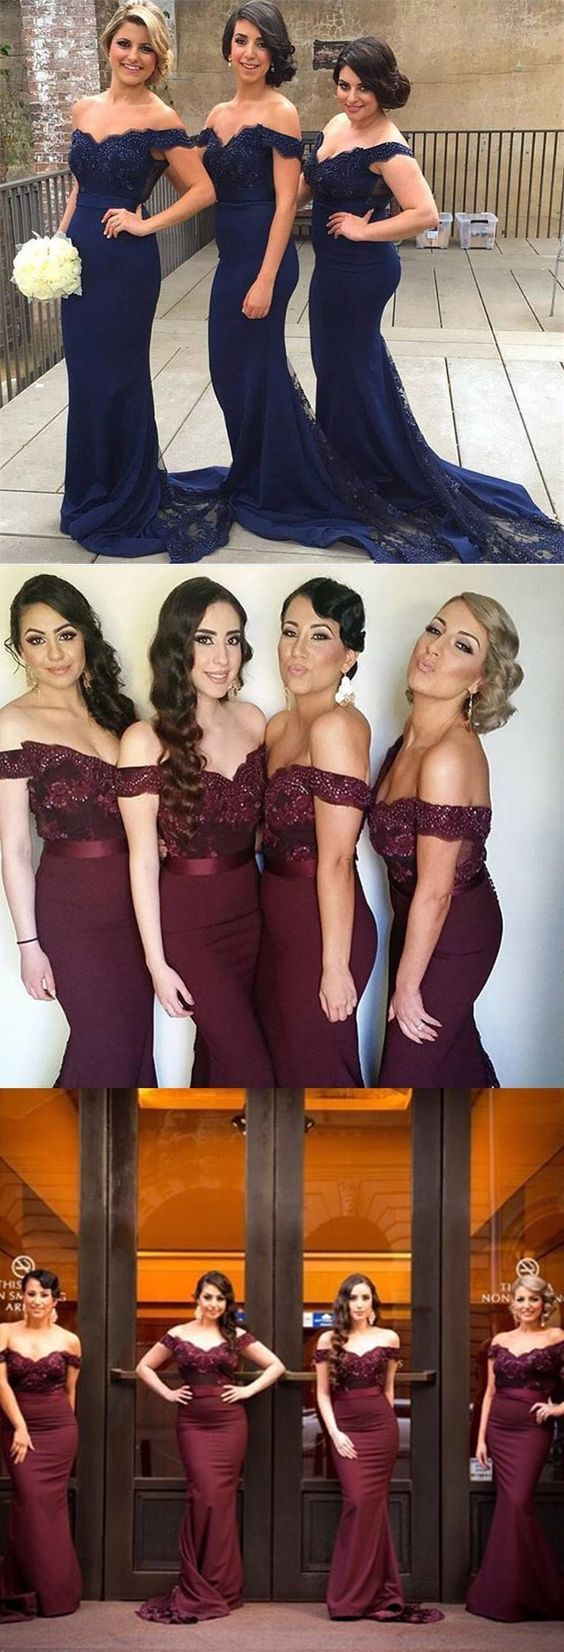 Elegant Off Shoulder Bridesmaid Dress,Long Sexy Backless Bridesmaid Women, Men and Kids Outfit Ideas on our website at 7ootd.com #ootd #7ootd